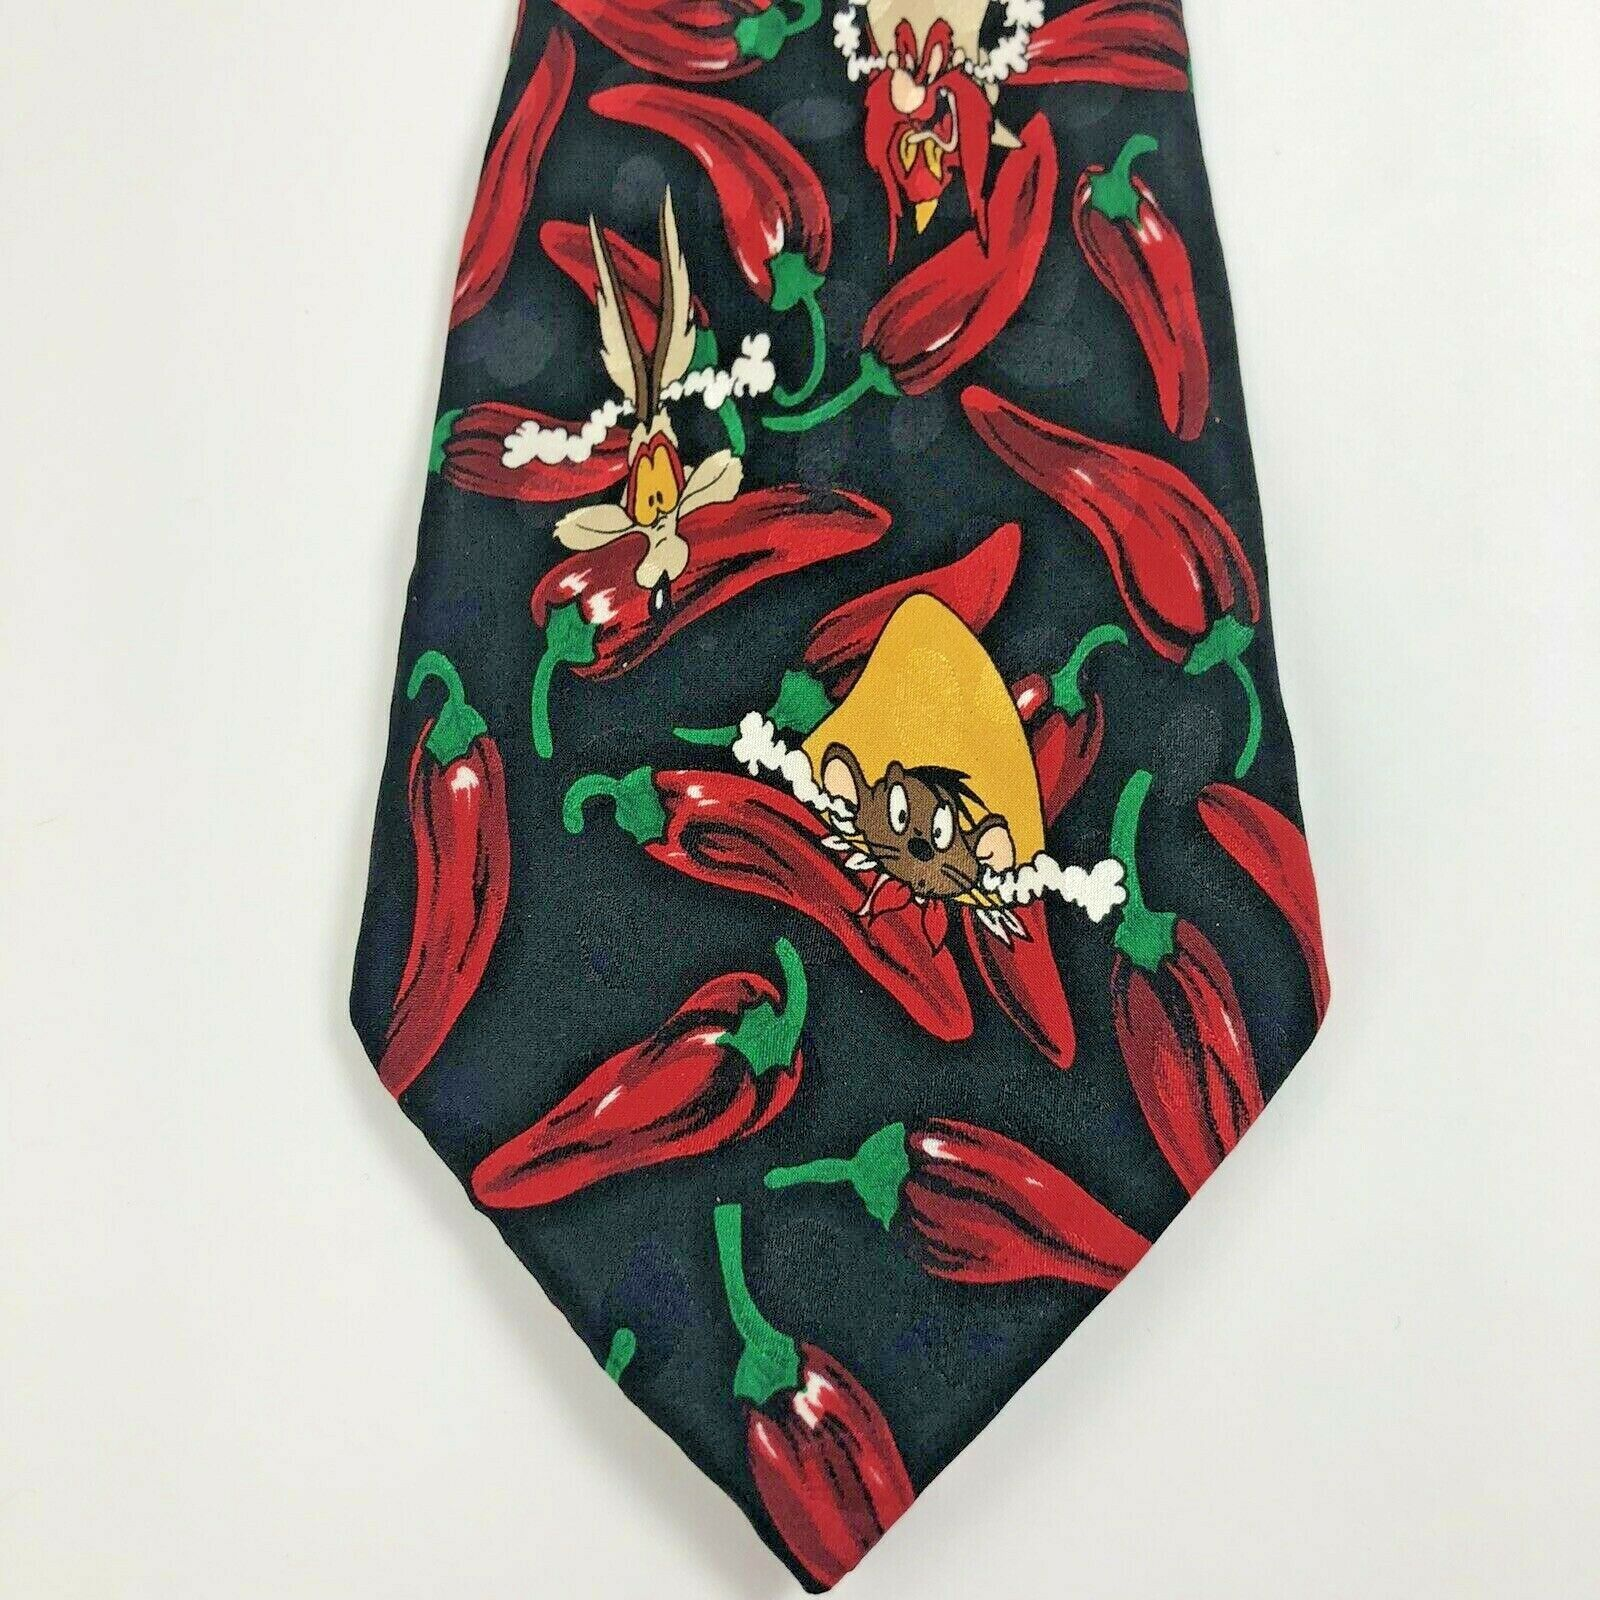 Primary image for Looney Tunes Mania 1995 Vintage Necktie Tie Chili Peppers 100% Silk - 73469